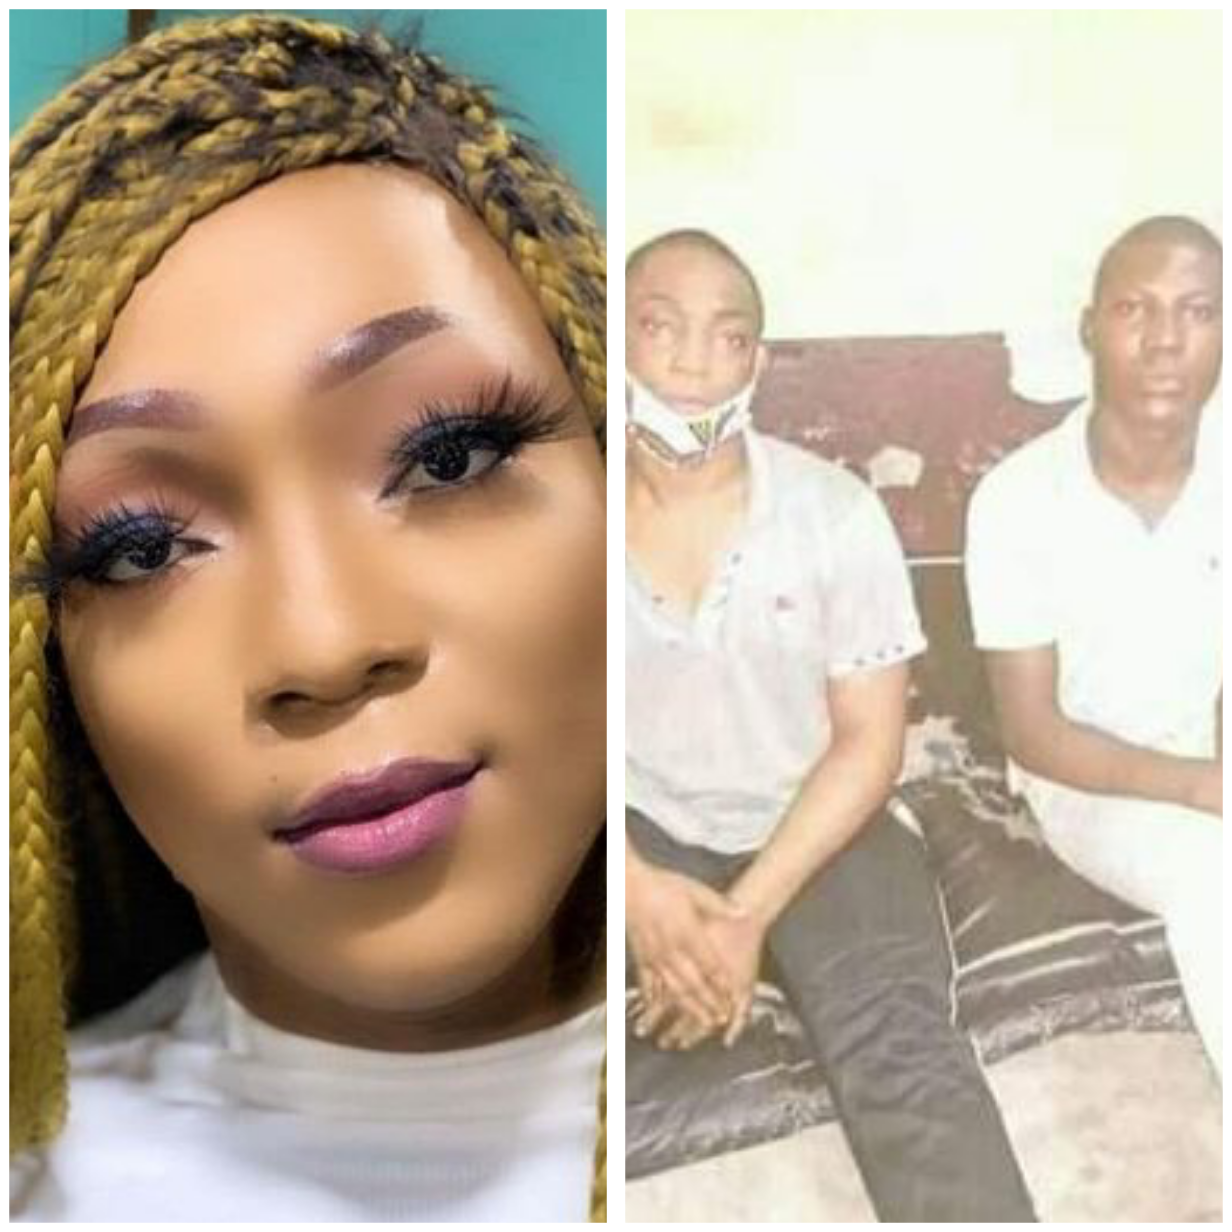 Popular Cameroonian crossdresser, Shakiro, one other sentenced to 5 years in prison for 'attempted homosexuality'